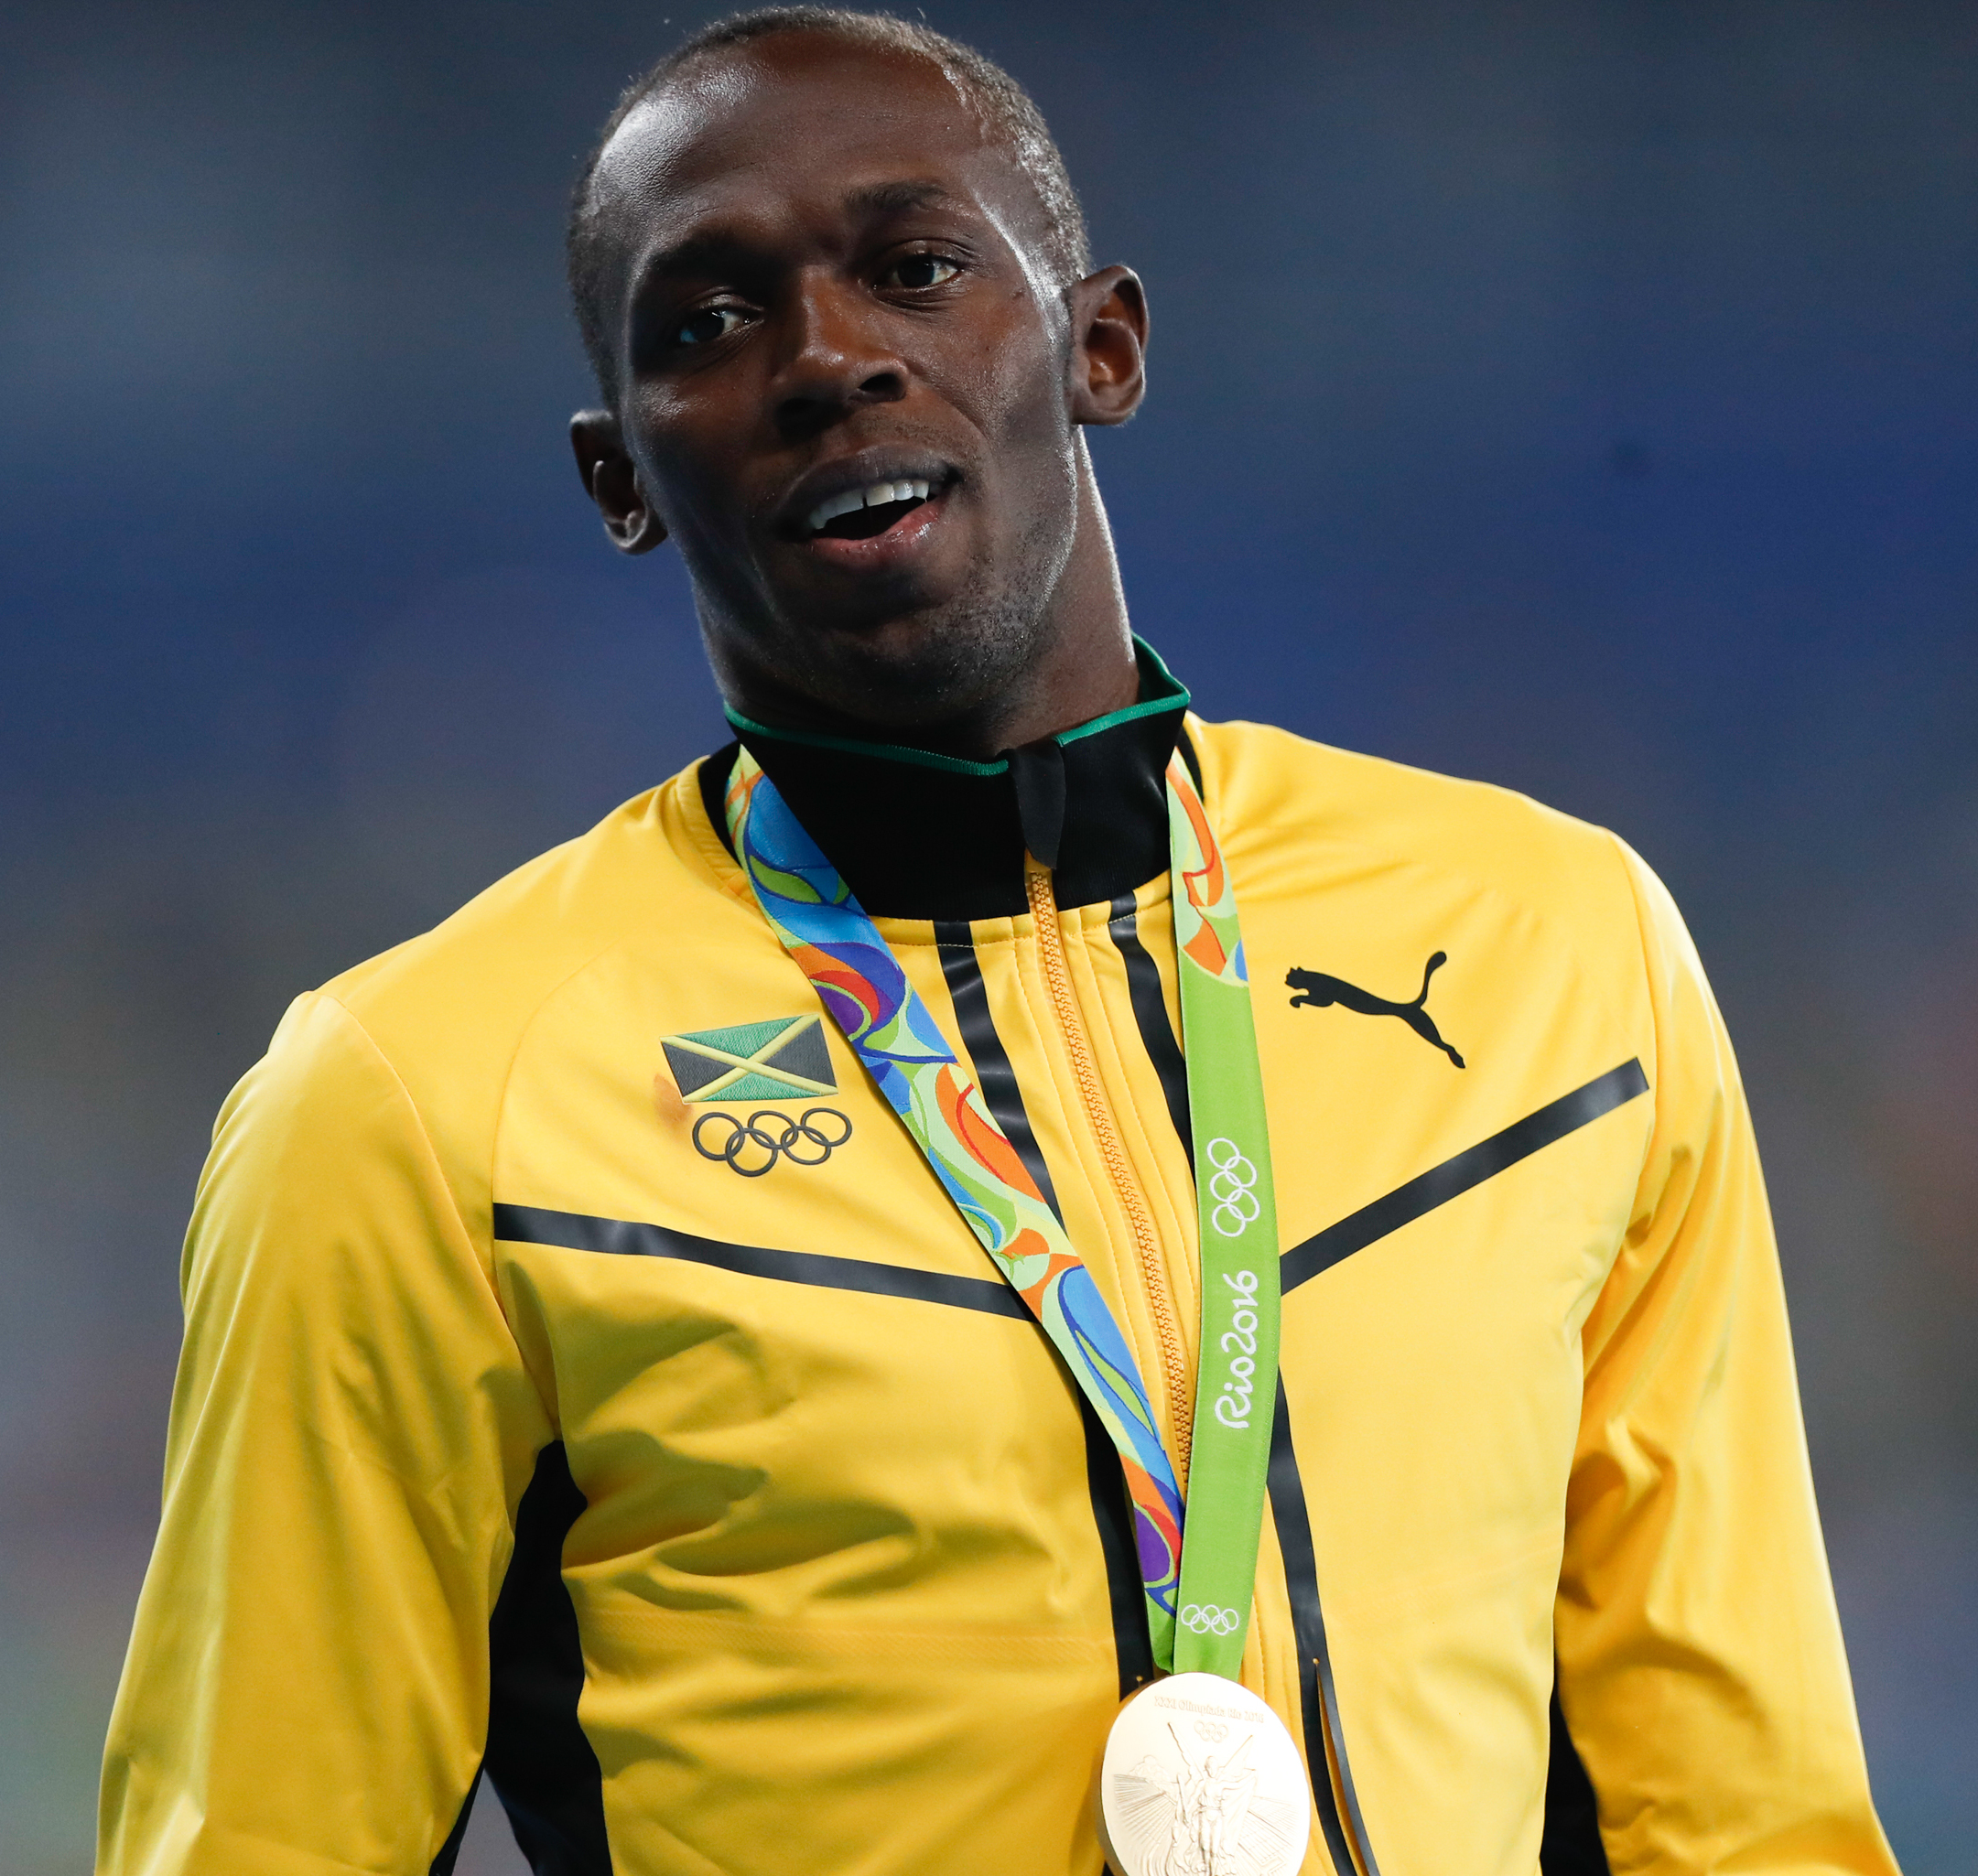 The 32-year old son of father Wellesley Bolt and mother Jennifer Bolt Usain Bolt in 2019 photo. Usain Bolt earned a  million dollar salary - leaving the net worth at 30 million in 2019